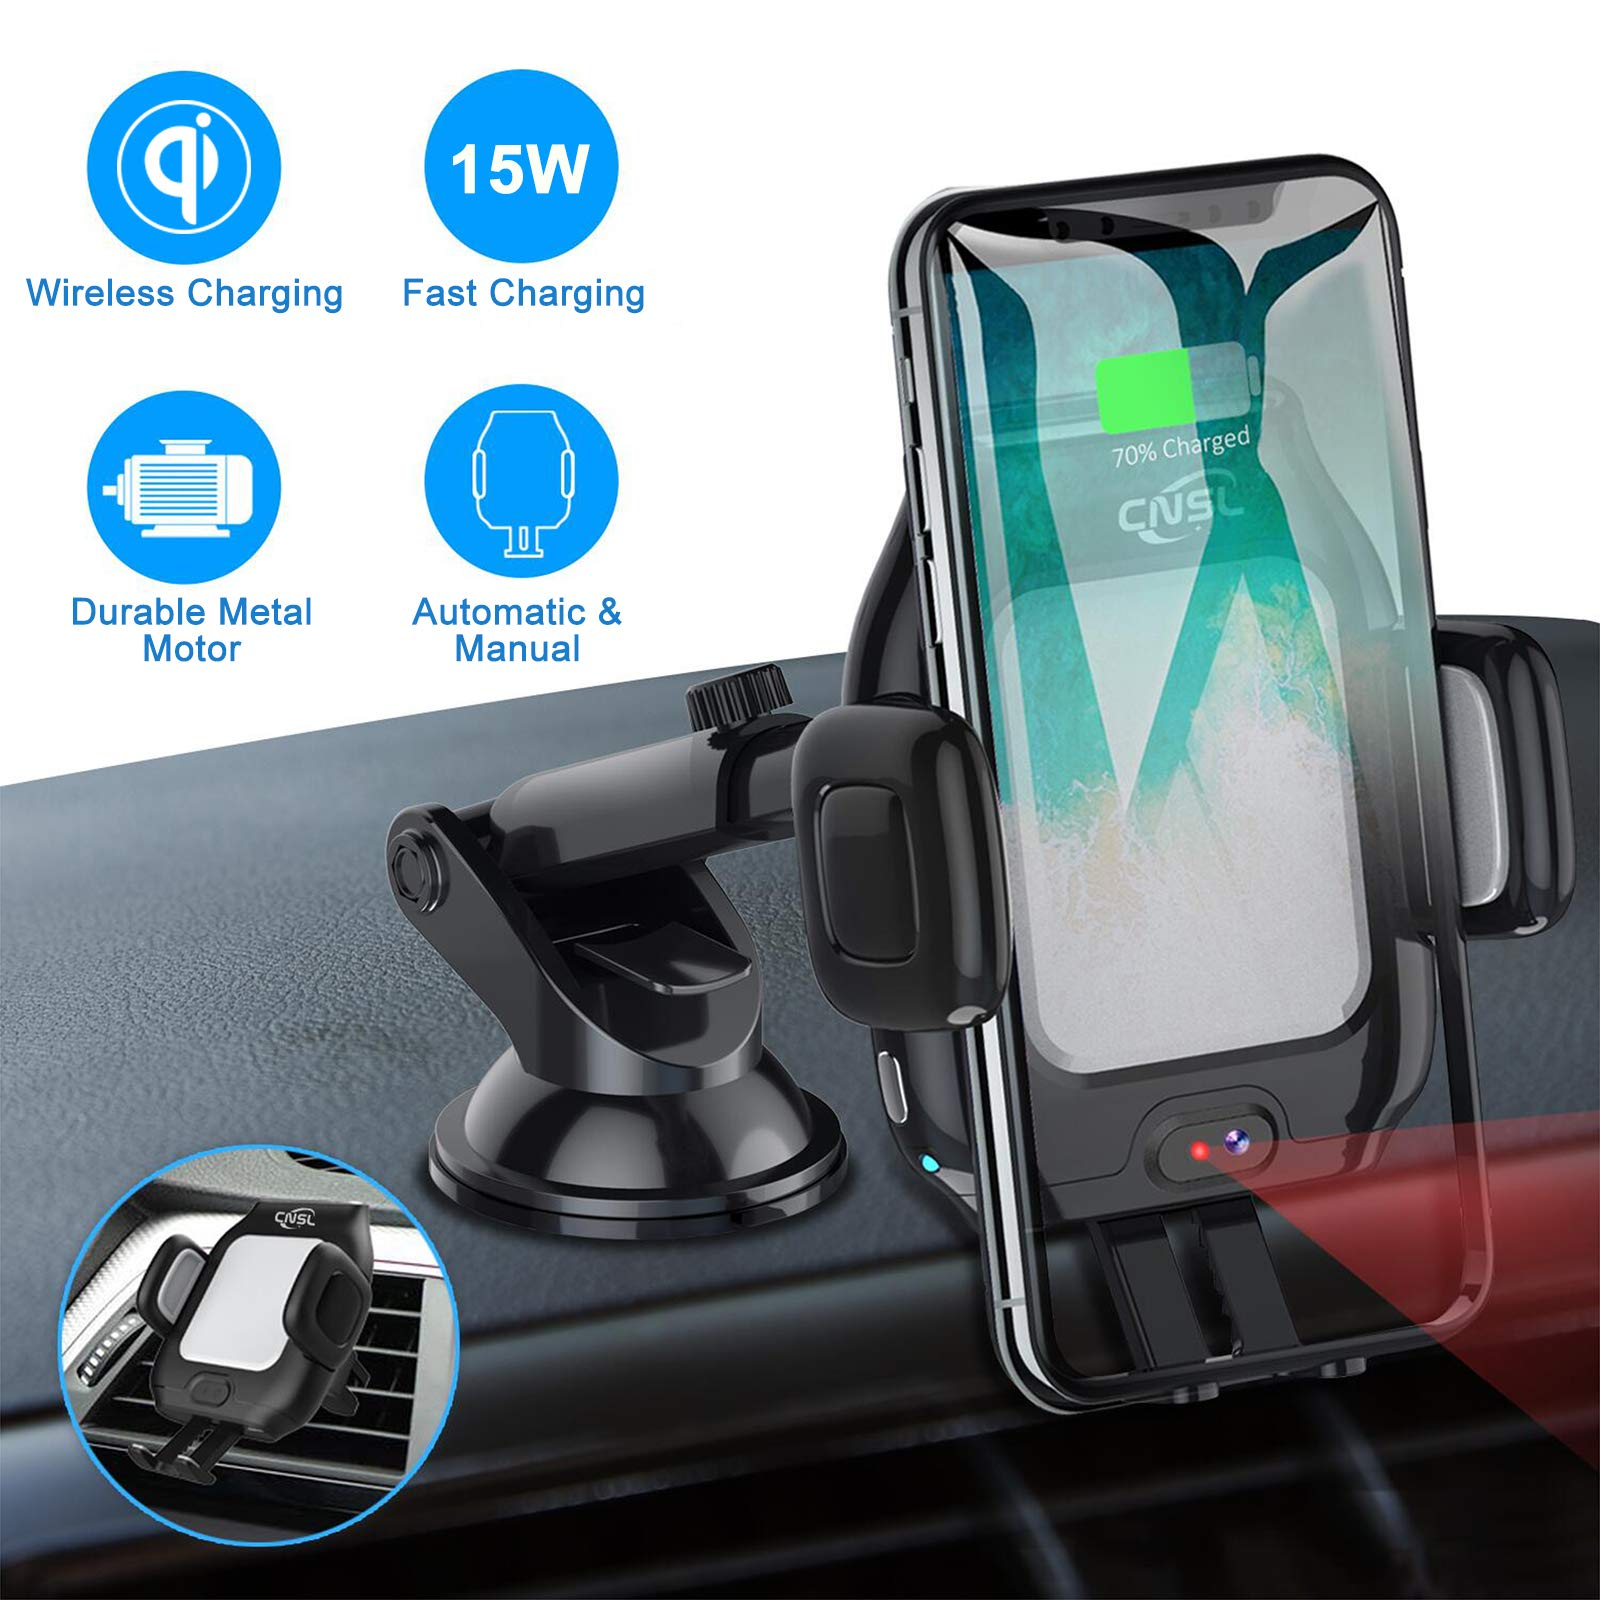 Wireless Car Charger Mount,CNSL Patent Auto Clamping QI 15W Fast Charging Metal Motor Phone Holder with Strong Suction,Air Vent Windshield Dashboard Stand,Compatible with iPhone Xs/XR/8,Samsung S10/S8 by CNSL